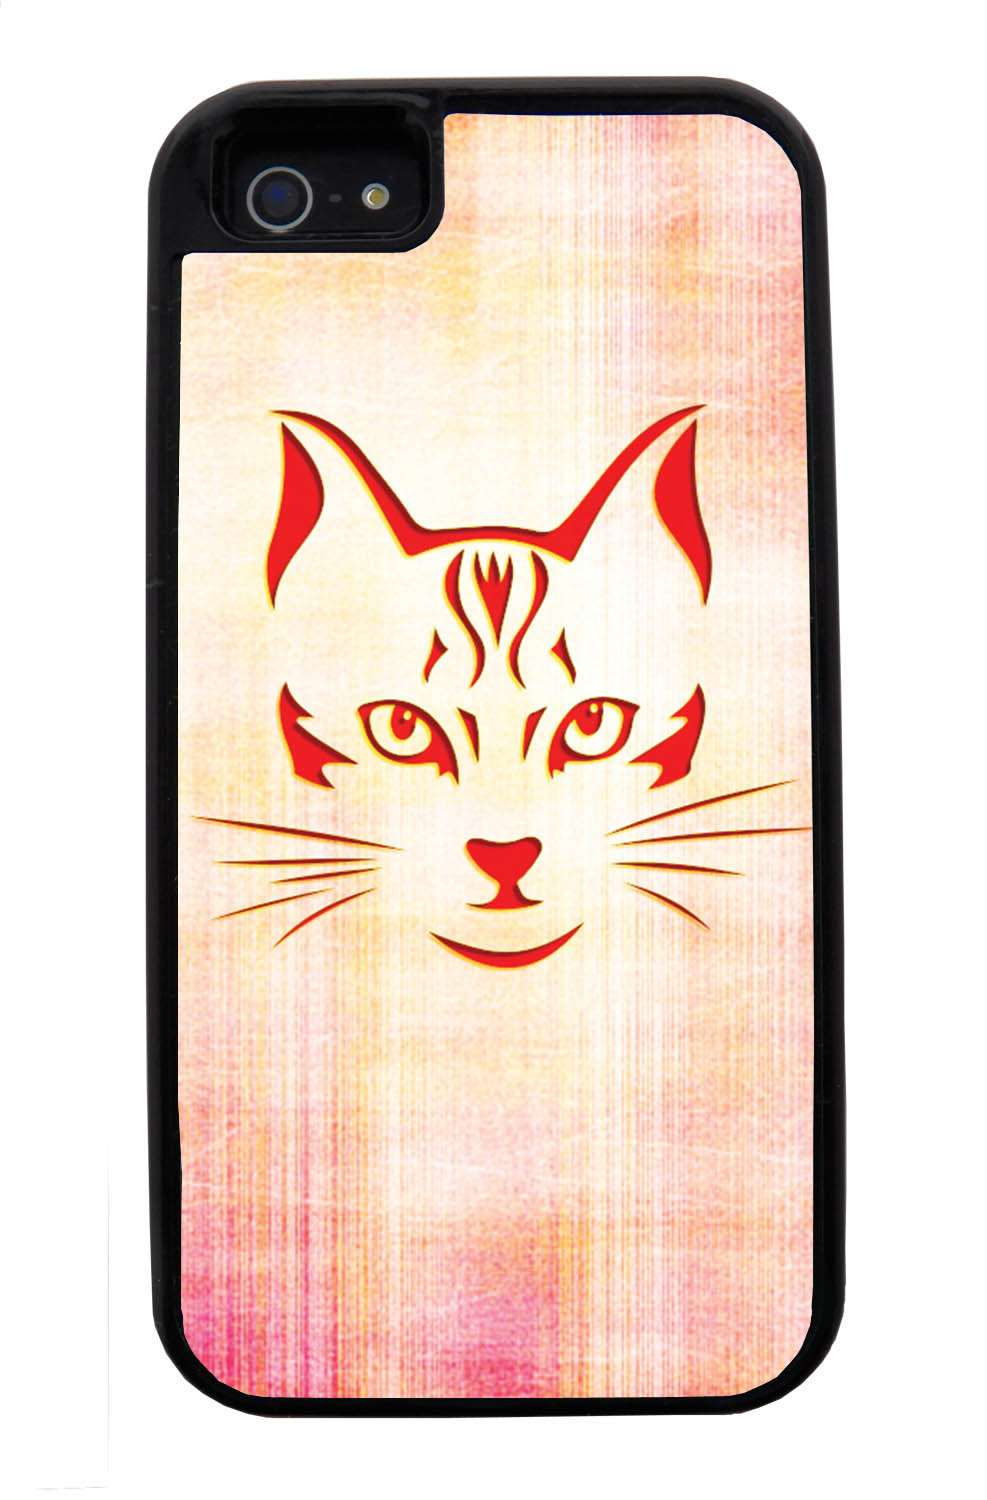 Apple iPhone 5 / 5S Cat Case - Red Cat Face on Light Orange-Pink - Simple Stencils Cutout - Black Tough Hybrid Case